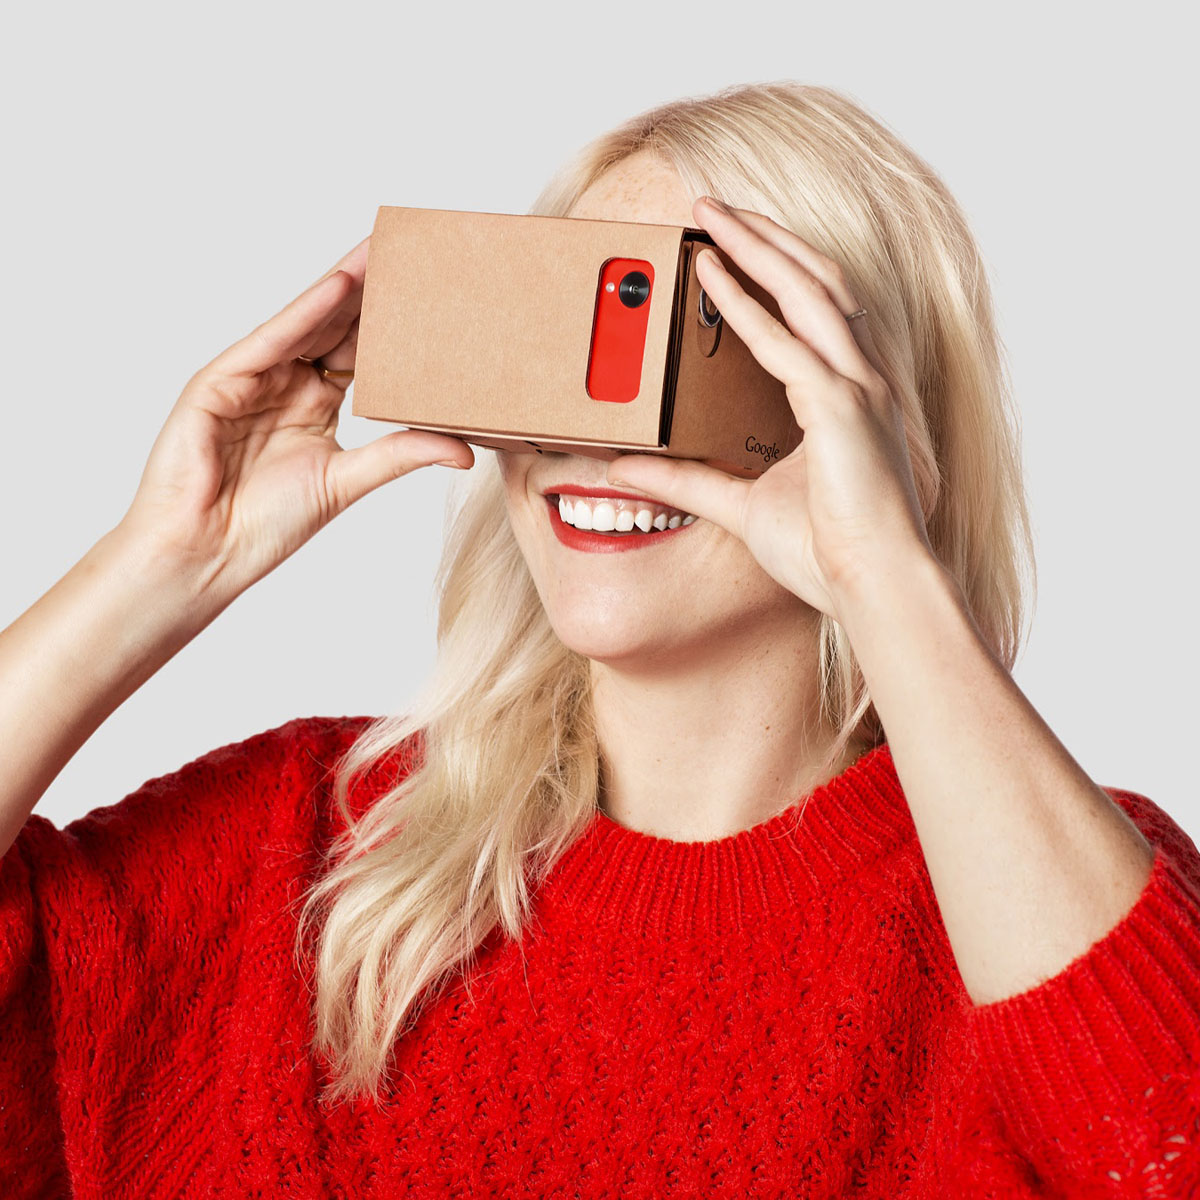 google cardboard google's new virtual reality department